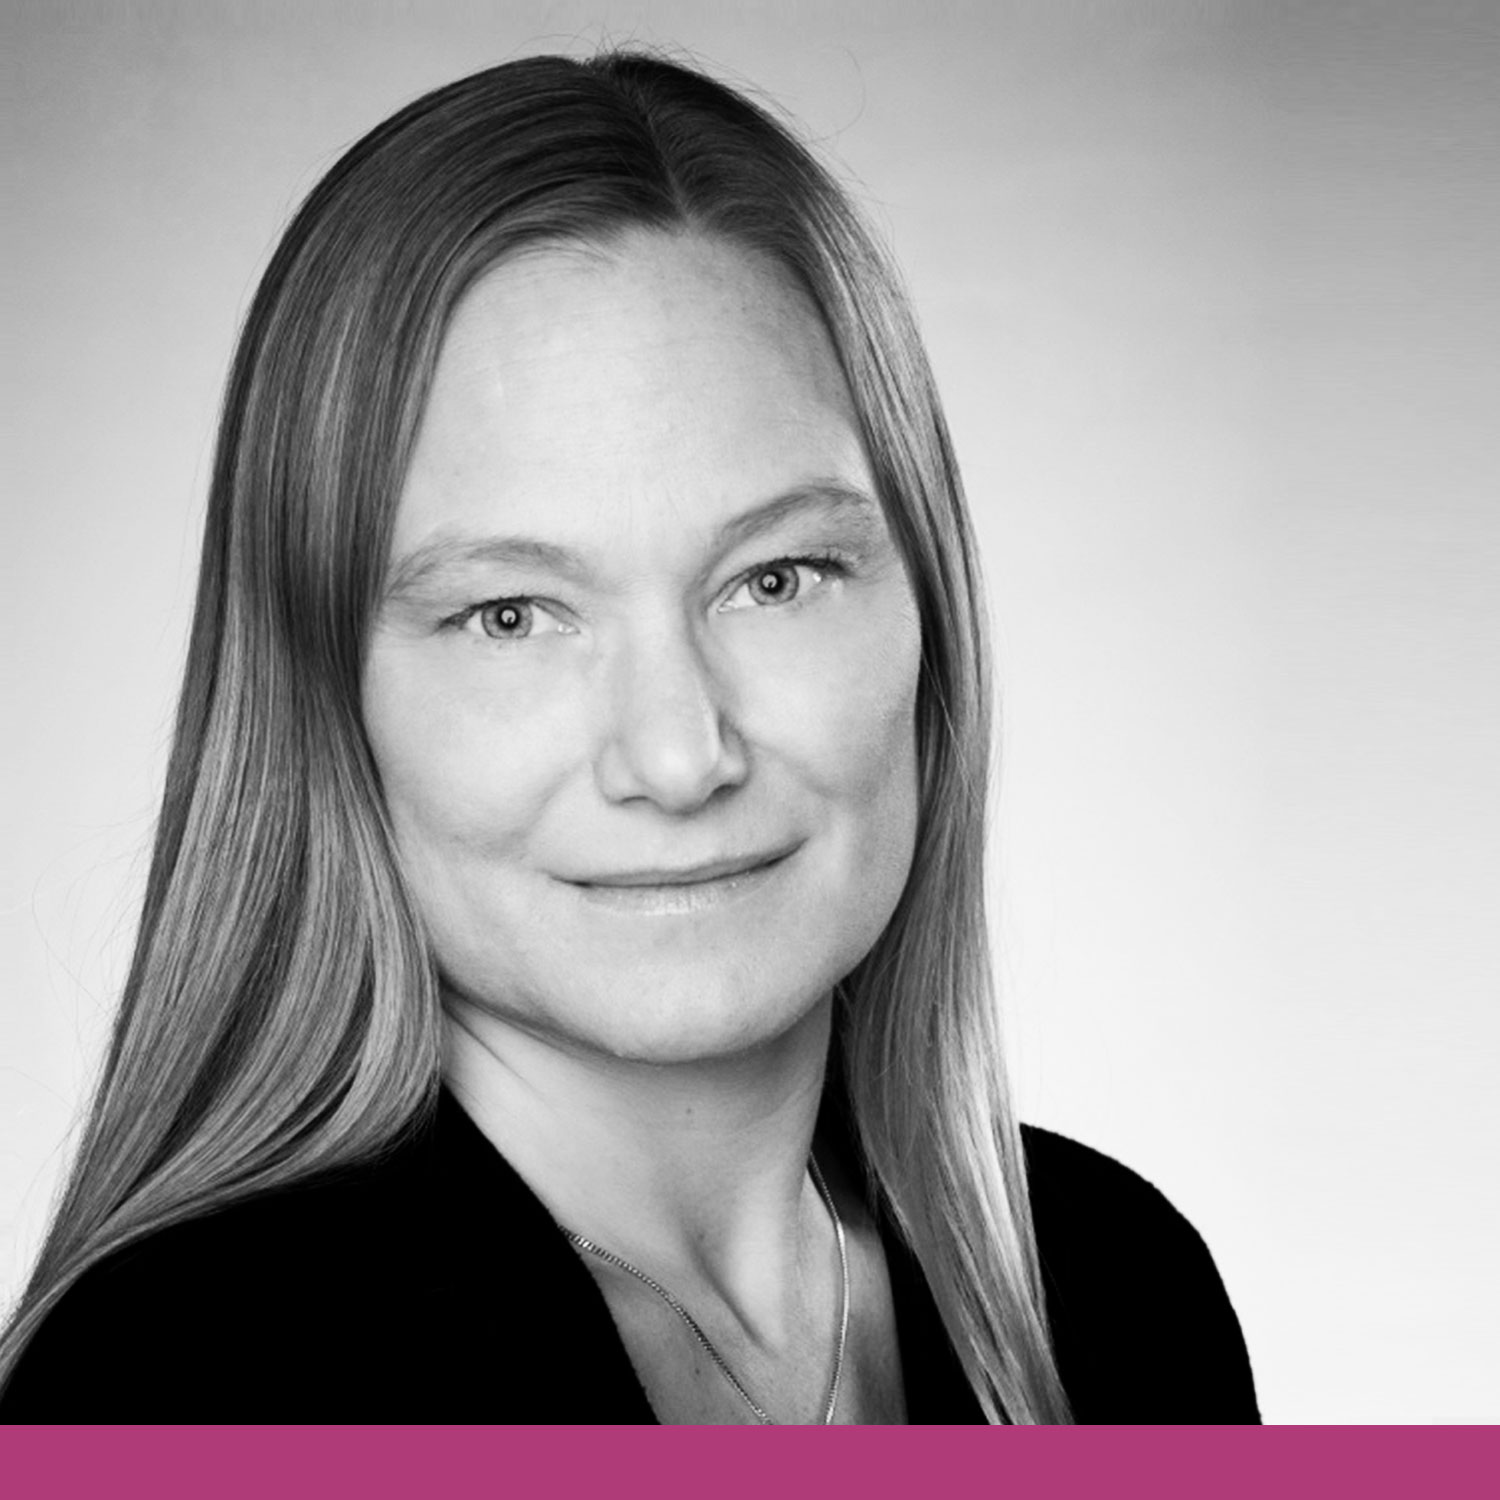 pernilla audibert, phdco-founder & cto - Former Head of R&D,GeoSynFuels